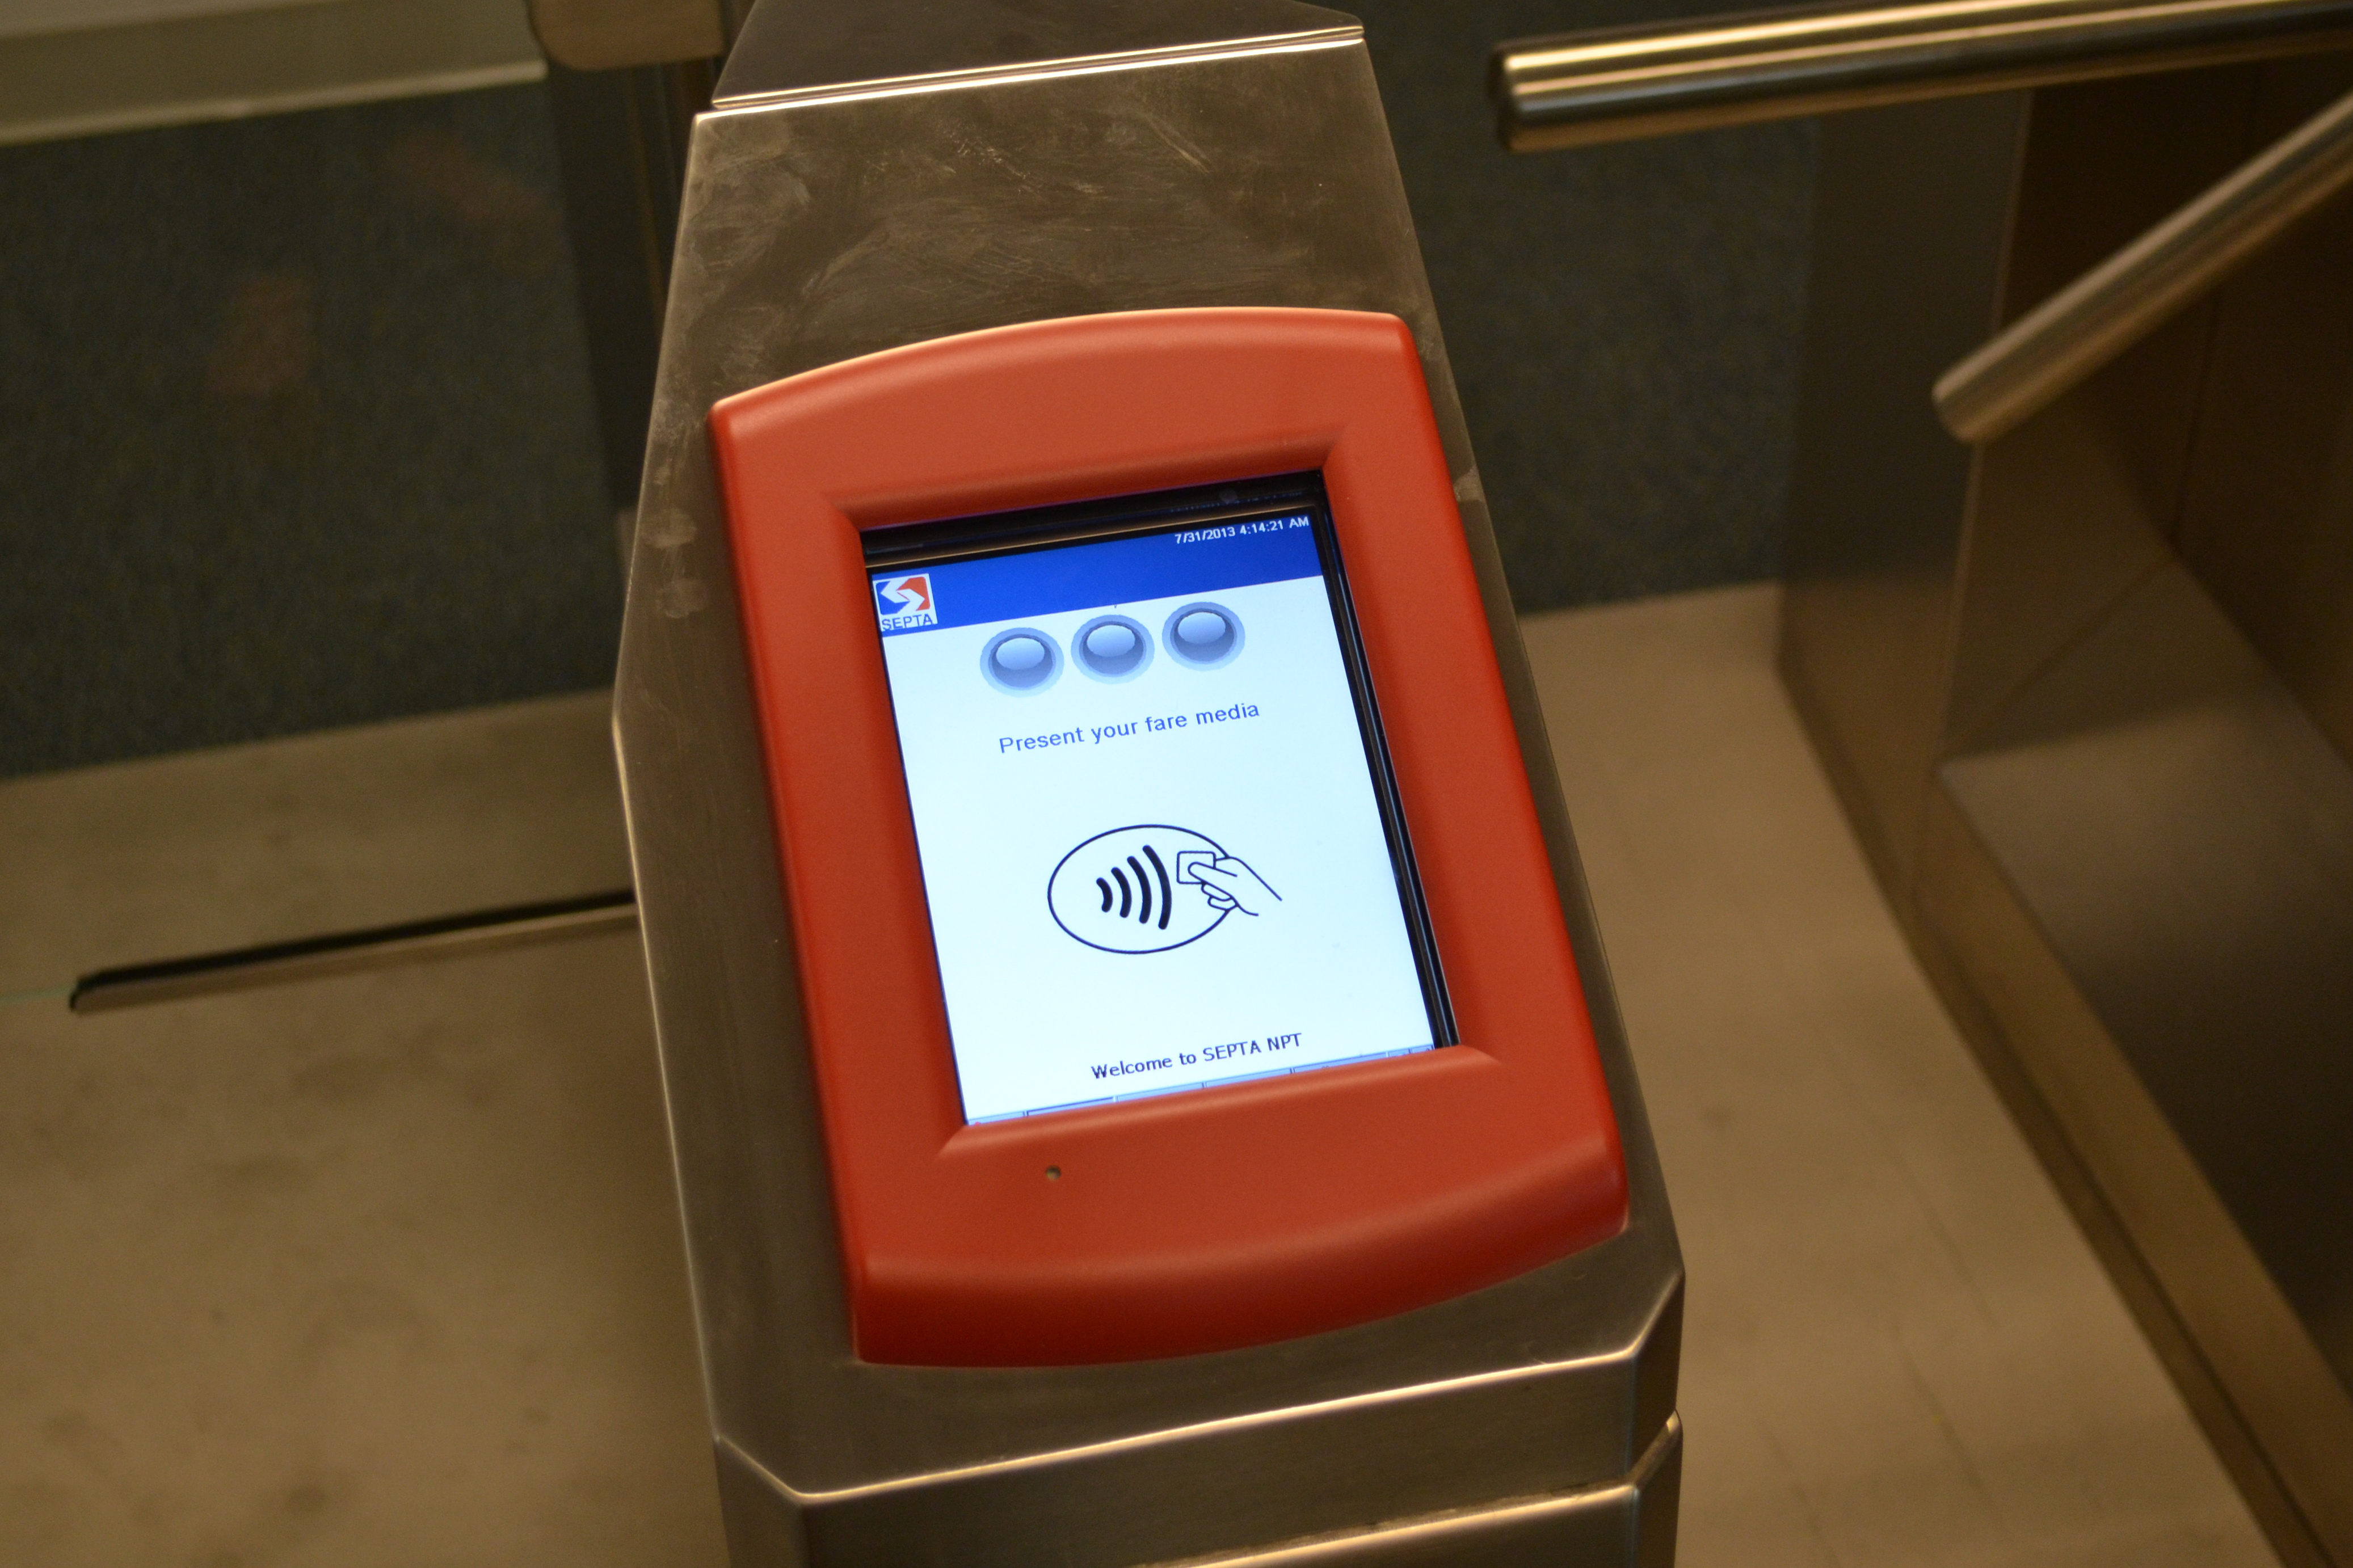 With NPT, passengers will tap a smartcard or NFC chip equipped device on an electronic reader